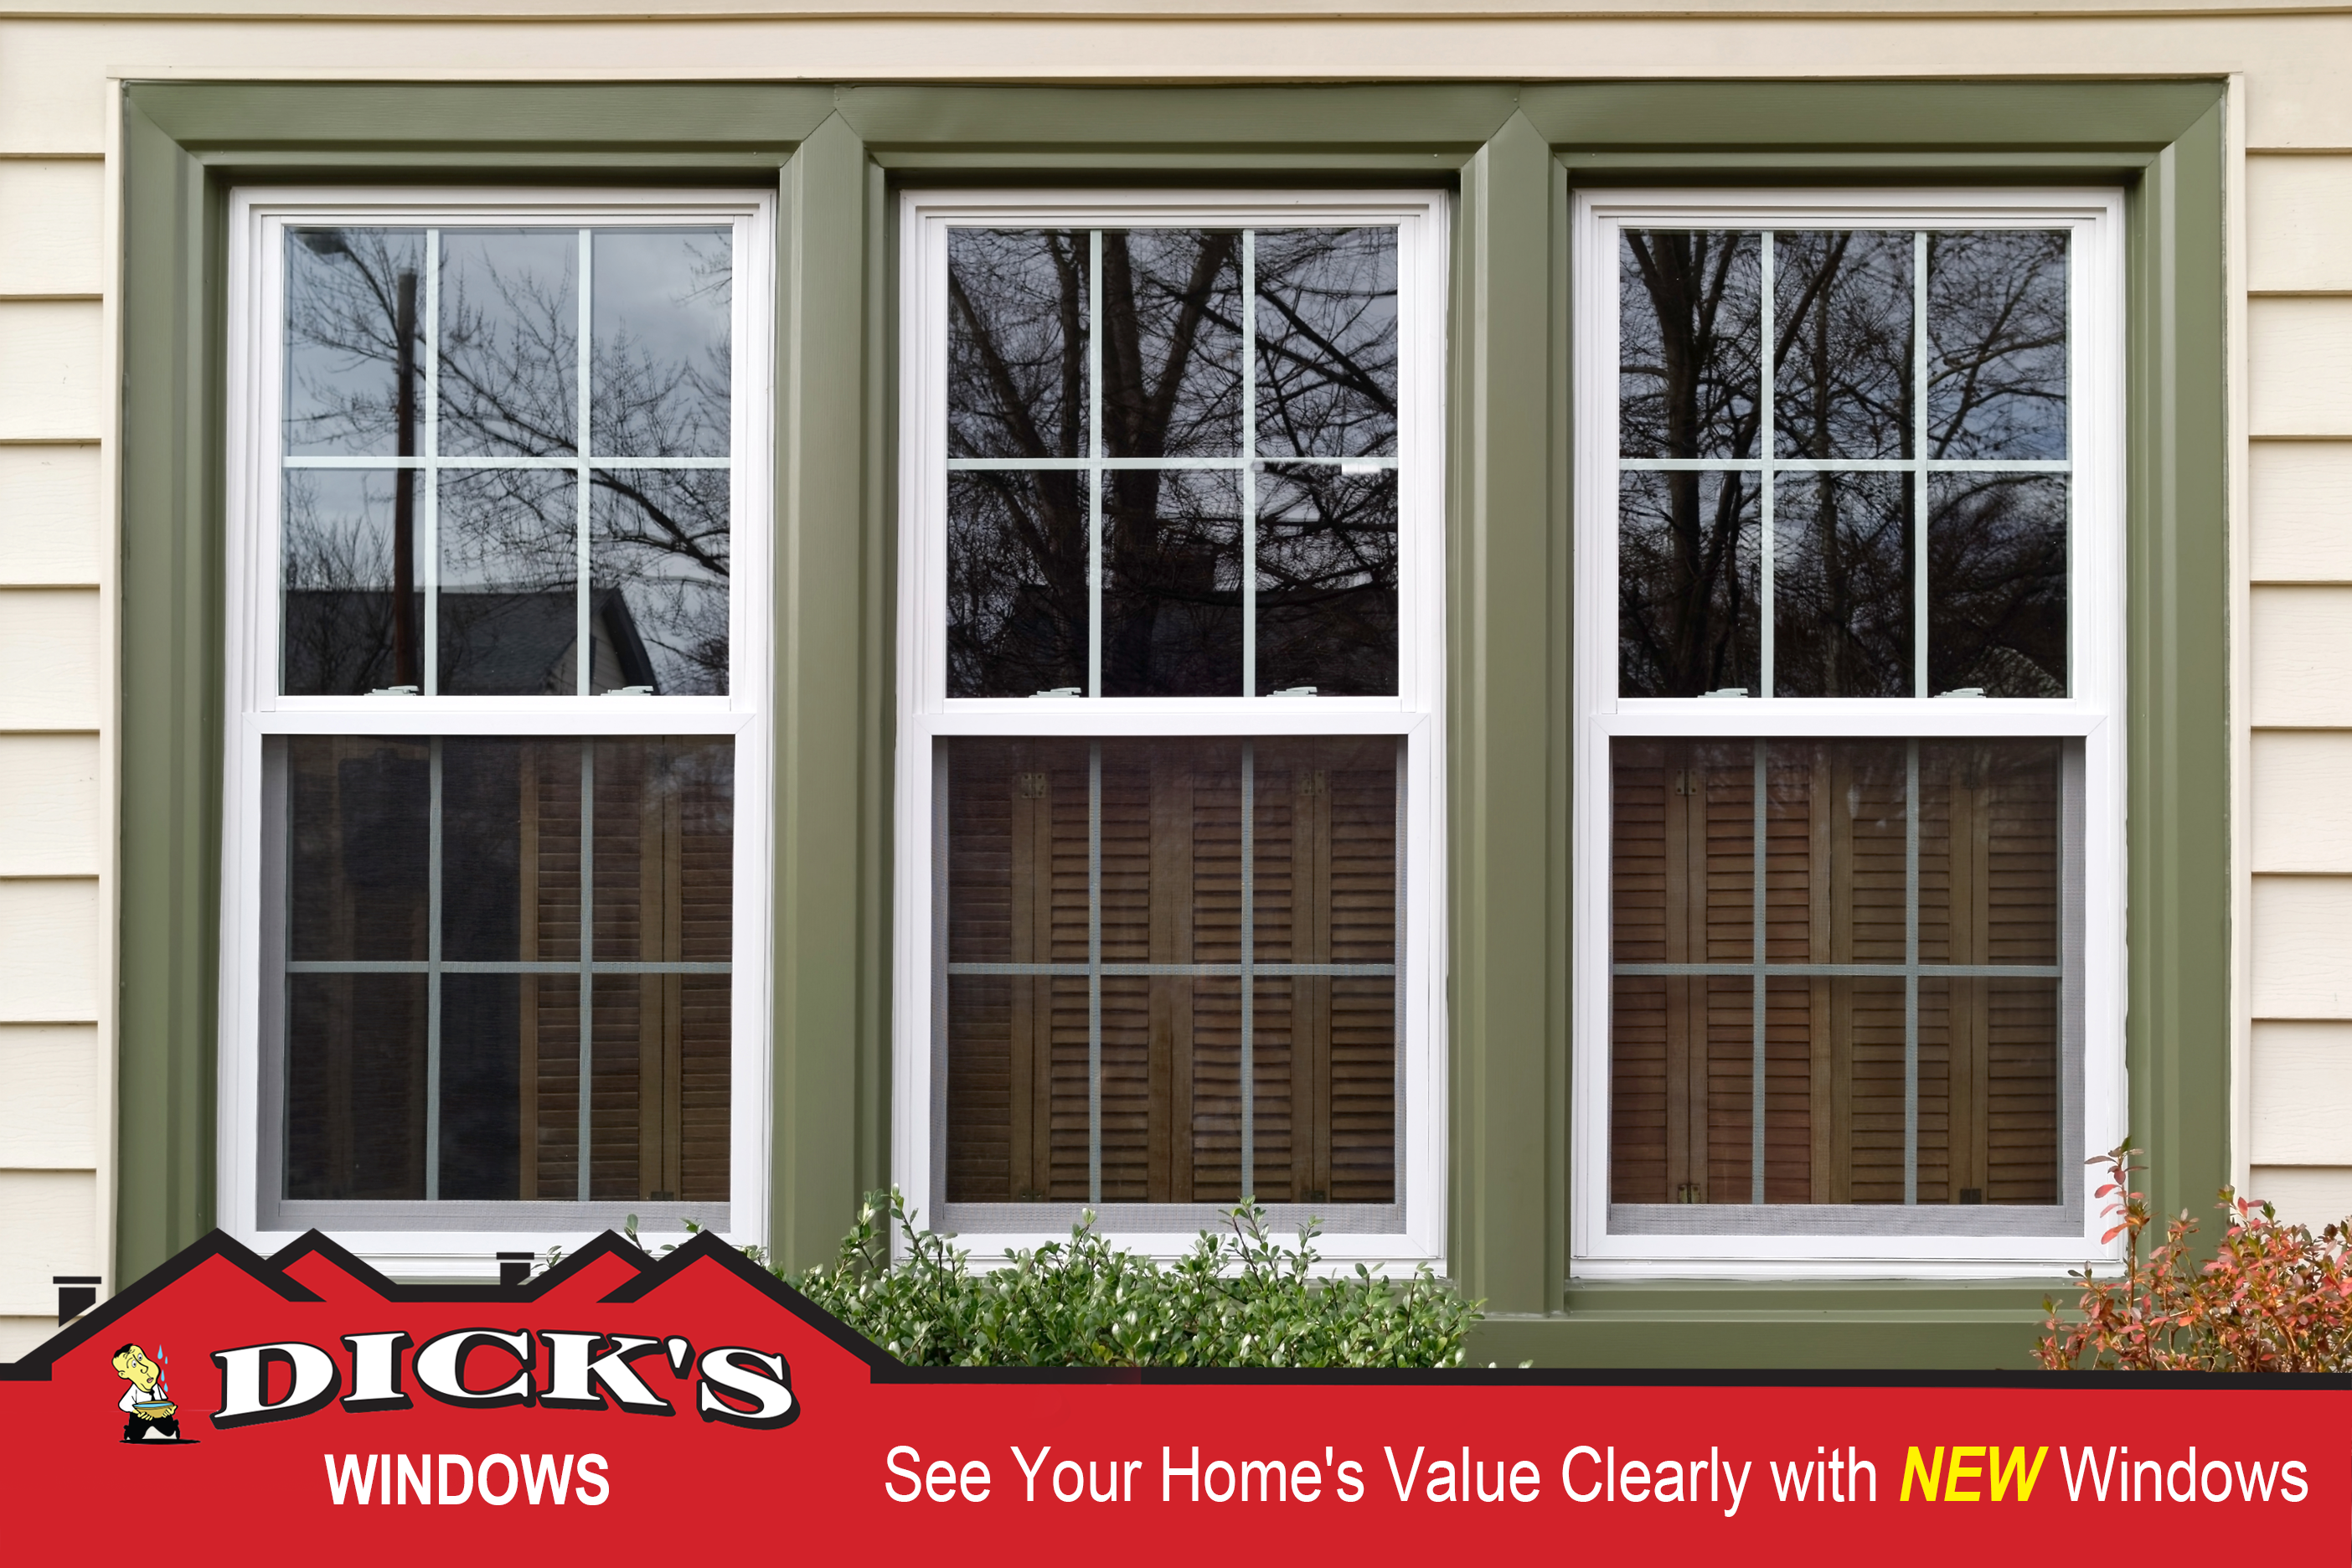 See Your Home's Value Clearly with New Windows from Dick's Roof Repair